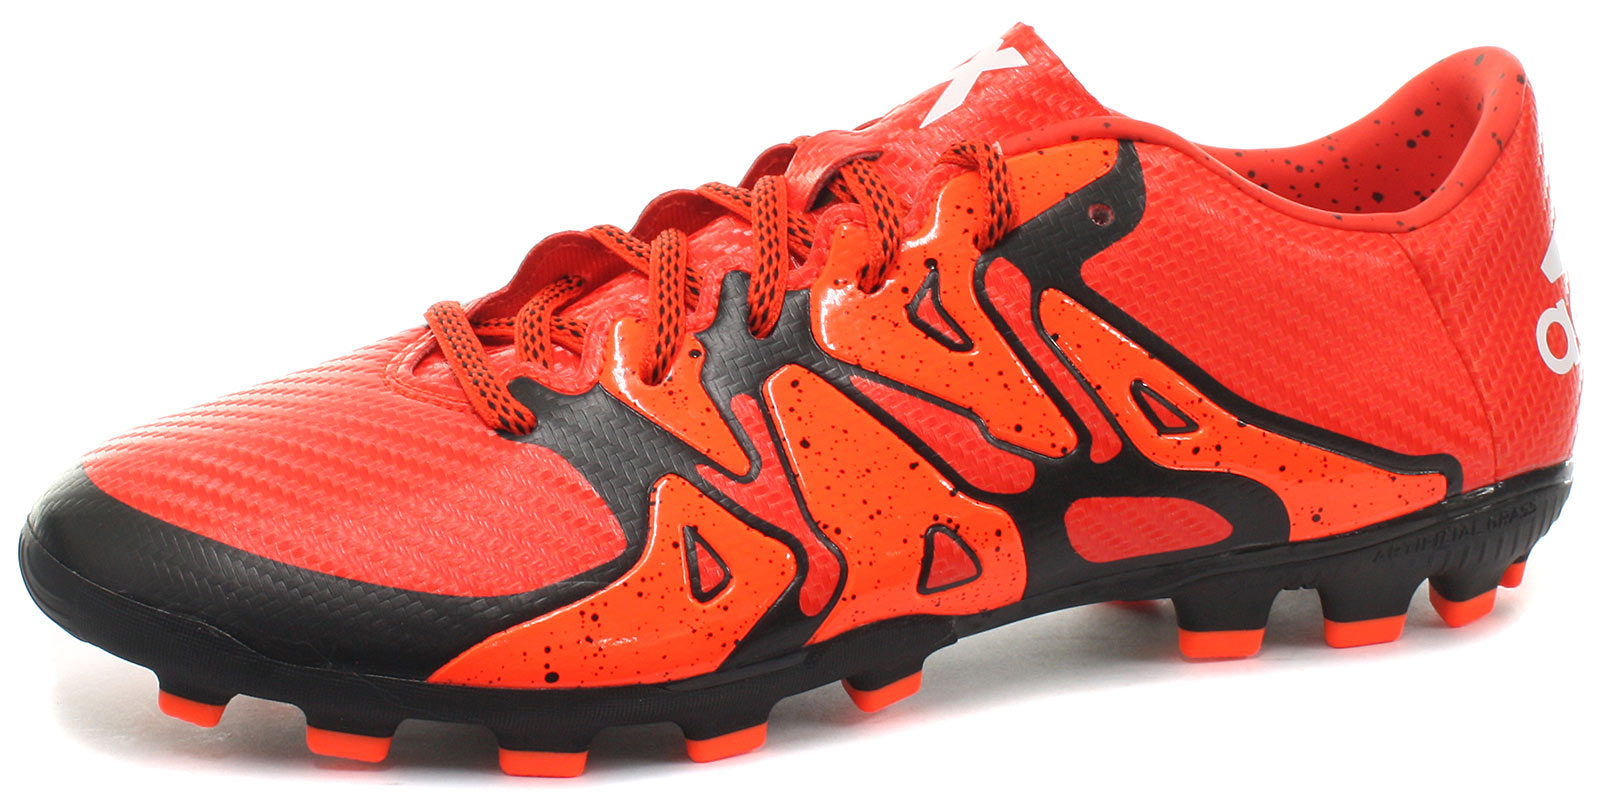 55c95fc51 New adidas X AG Artificial Ground Football Boots ALL SIZES 15.3 Mens  nqbkfh3658-Shoes   Cleats